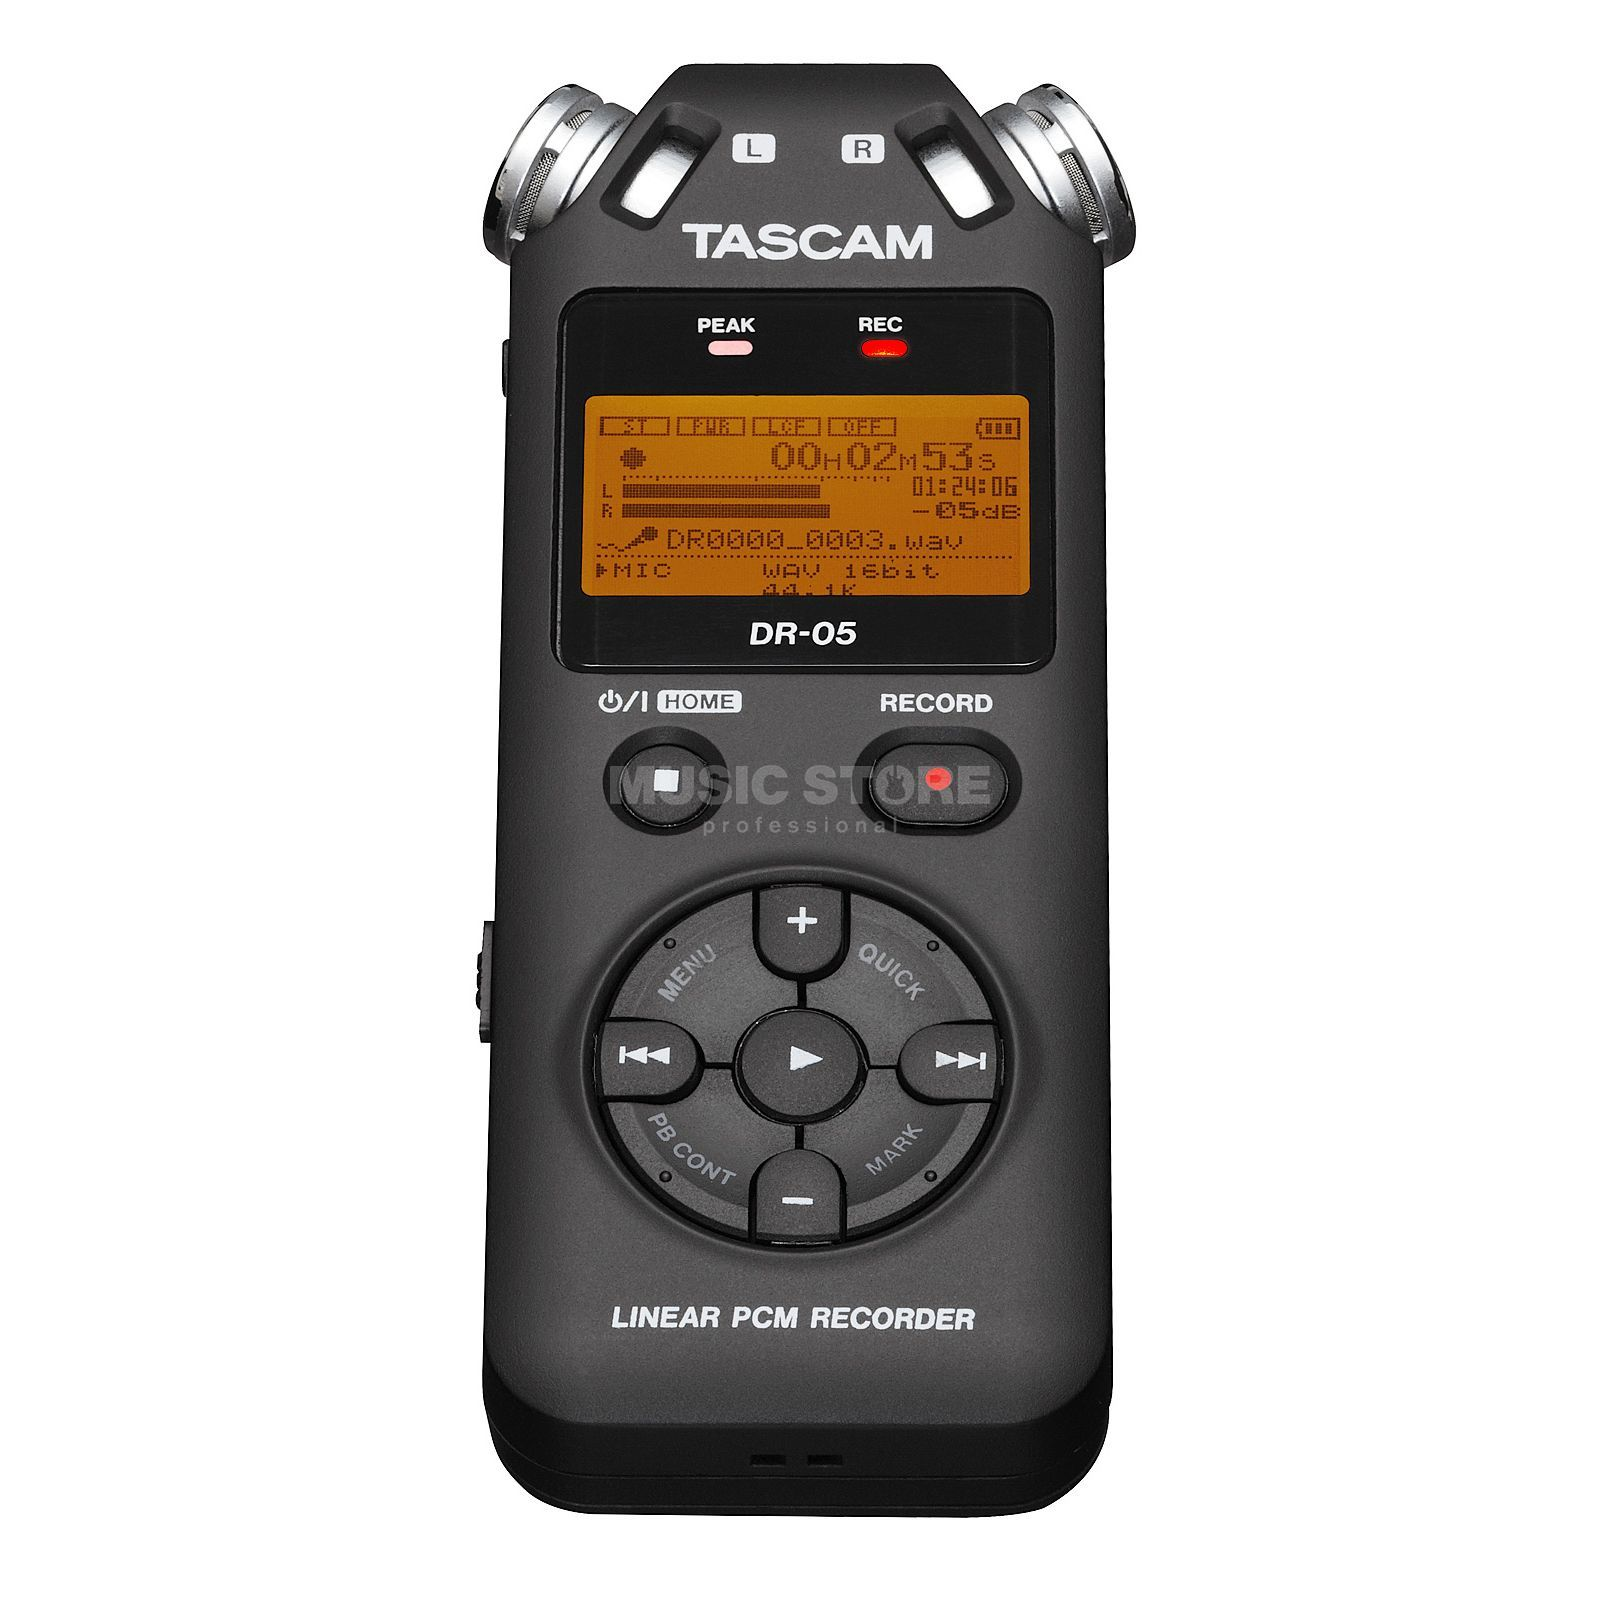 Tascam DR-05 Portable Digital Recorder Product Image